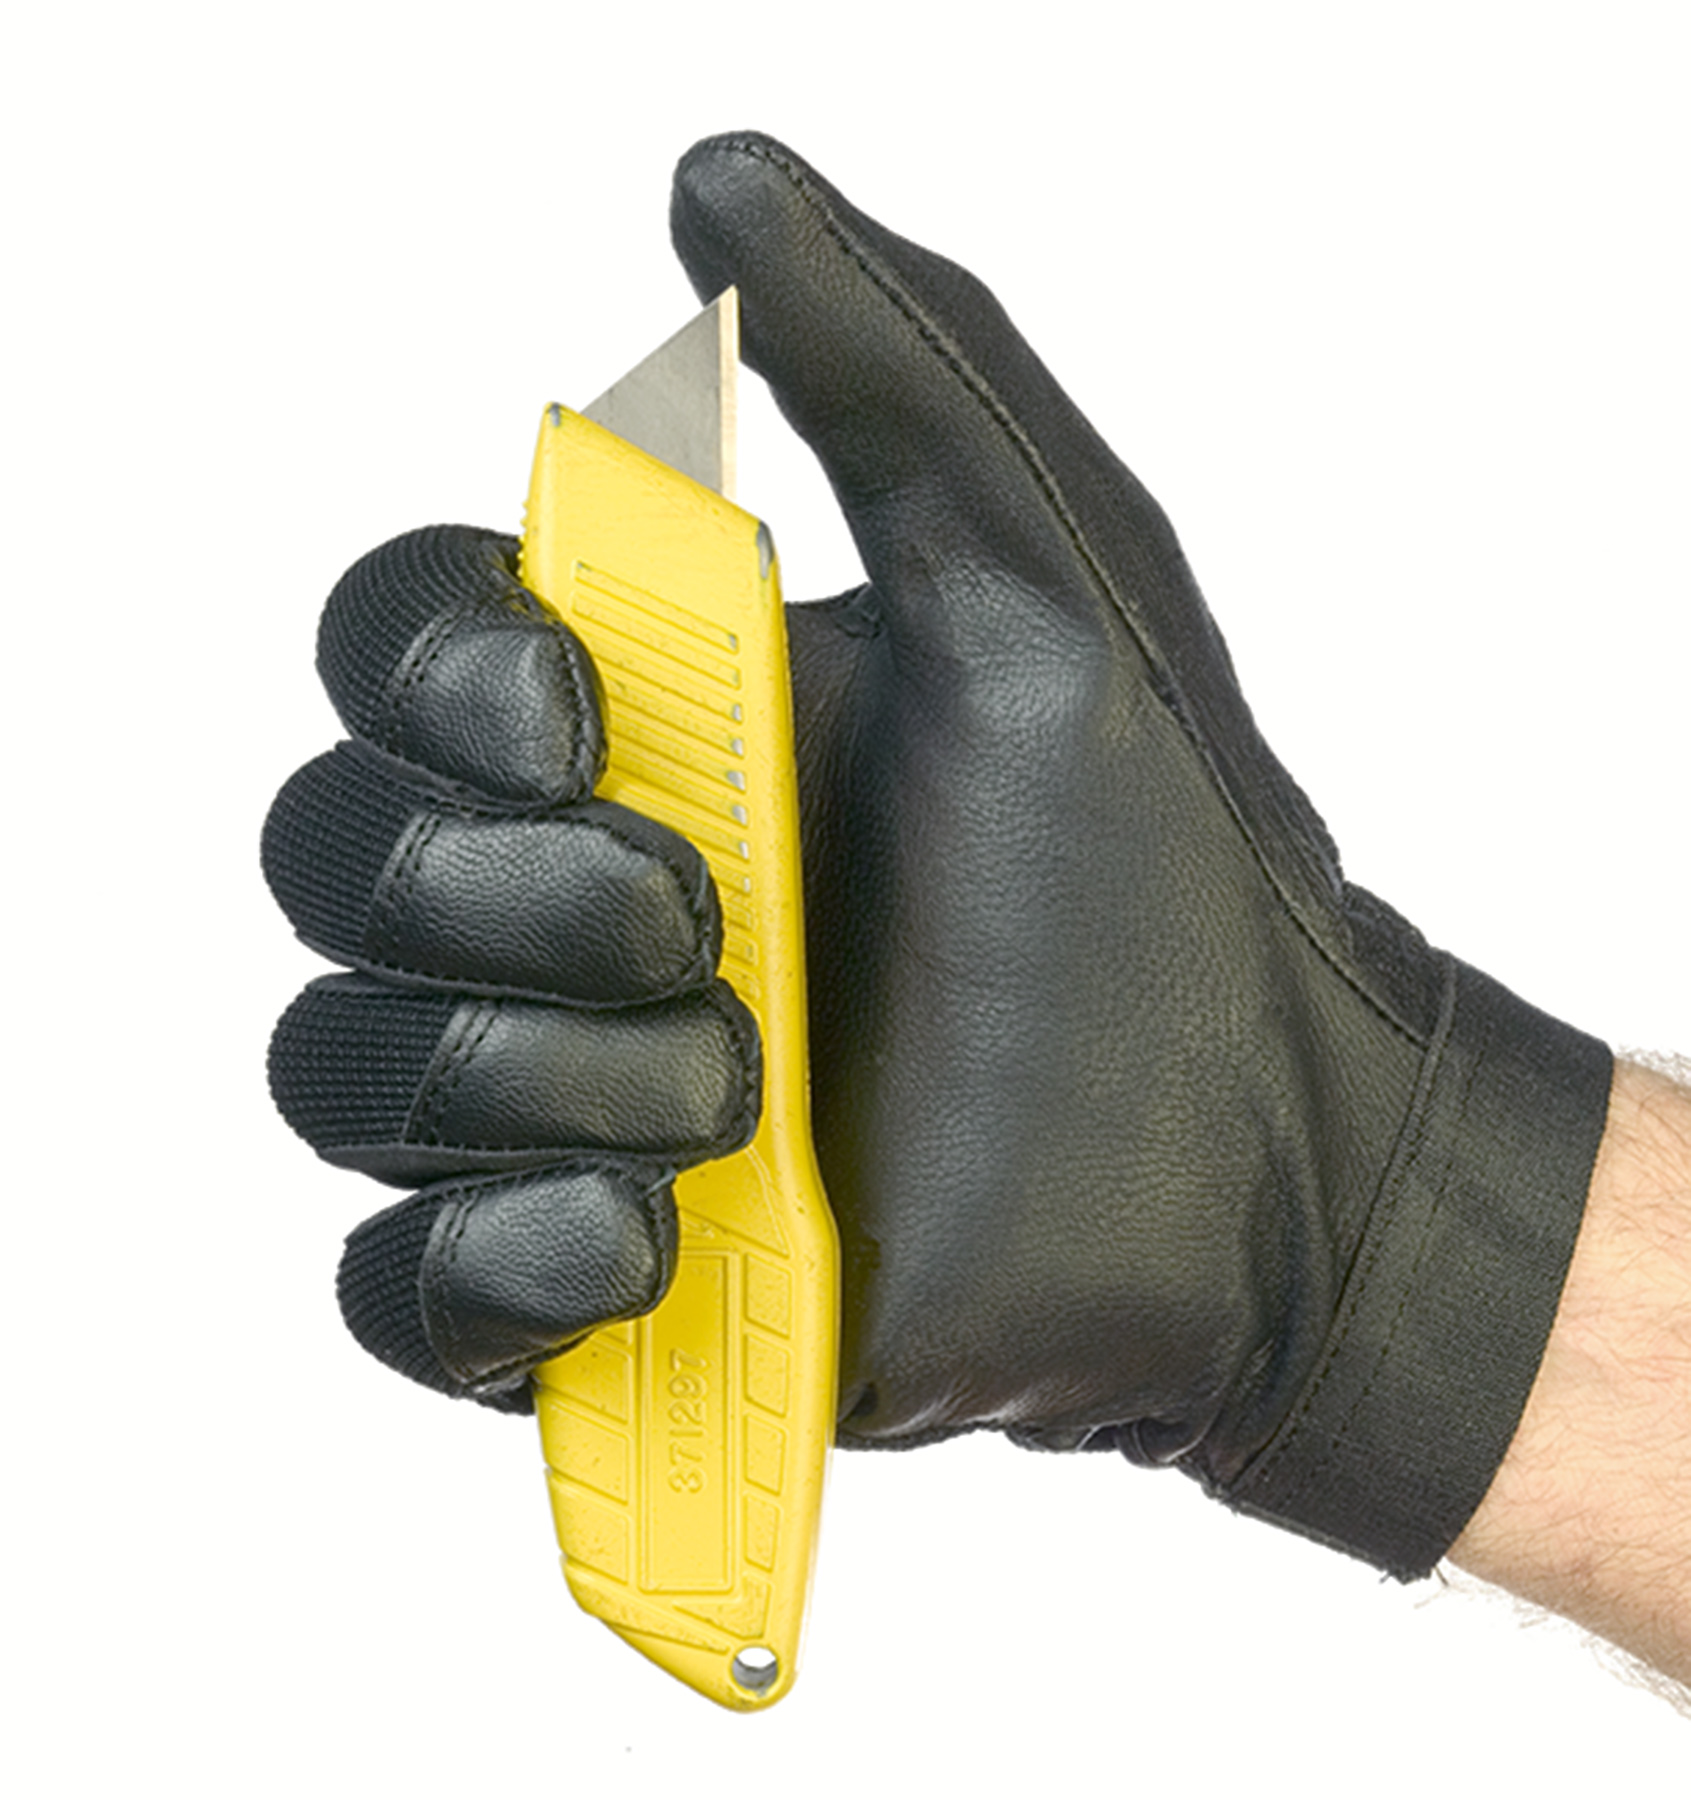 Physical Considerations for safety gloves